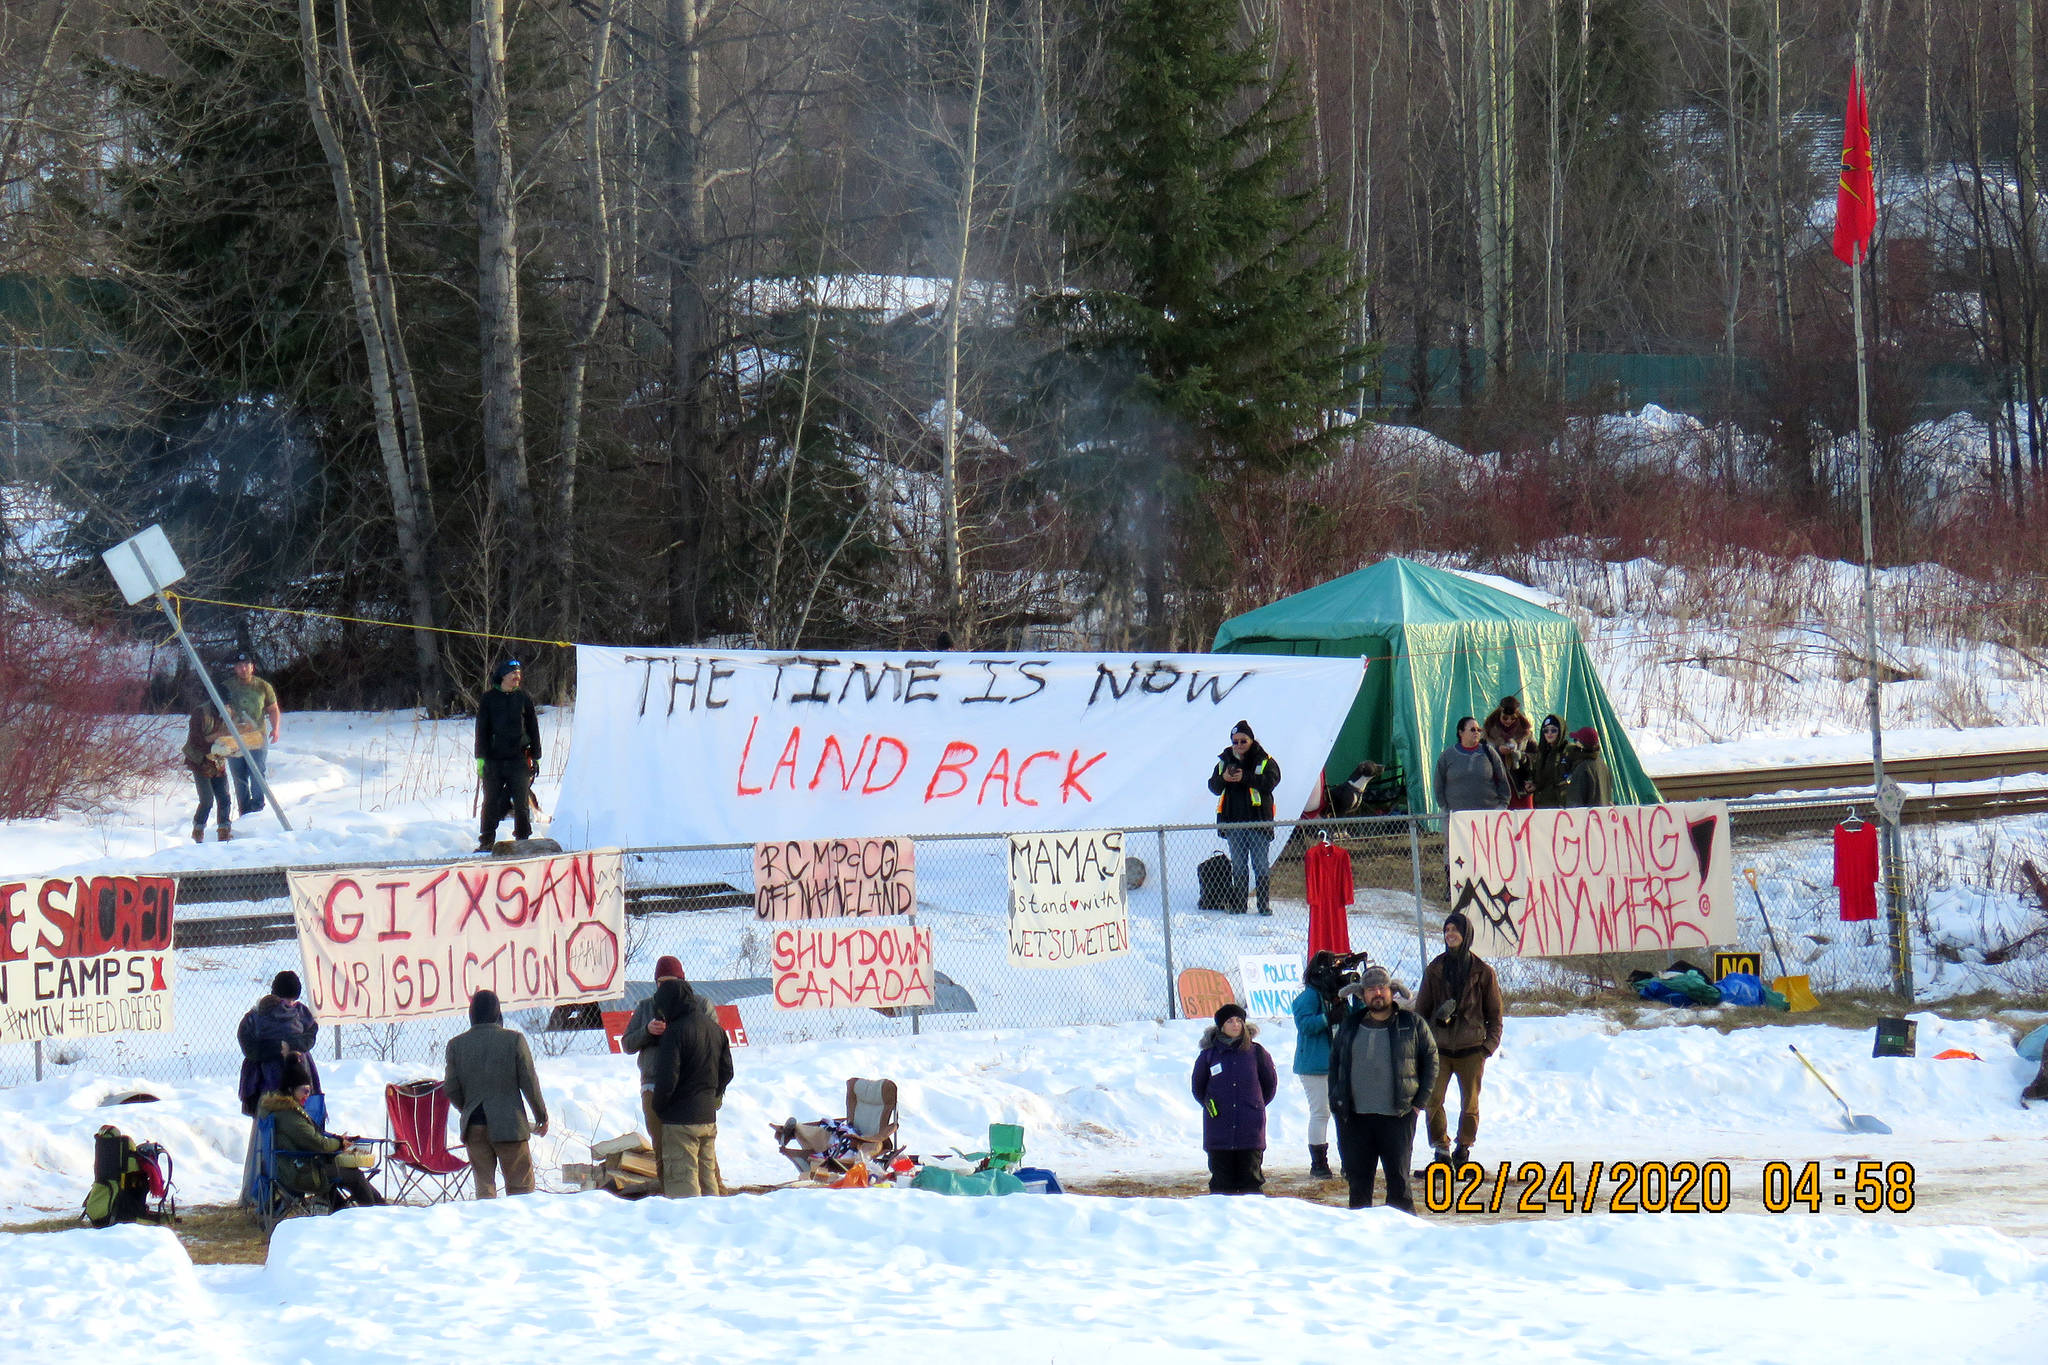 FILE - In this file photo, members of the Gitxsan Nation resurrect their blockade of the main CN rail line in New Hazelton Feb. 24. A new Research Co. poll released Tuesday, March 17, 2020 suggests most B.C. residents support carrying on with construction of the Coastal GasLink natural gas pipeline in northern B.C. (Randall Shoop photo)